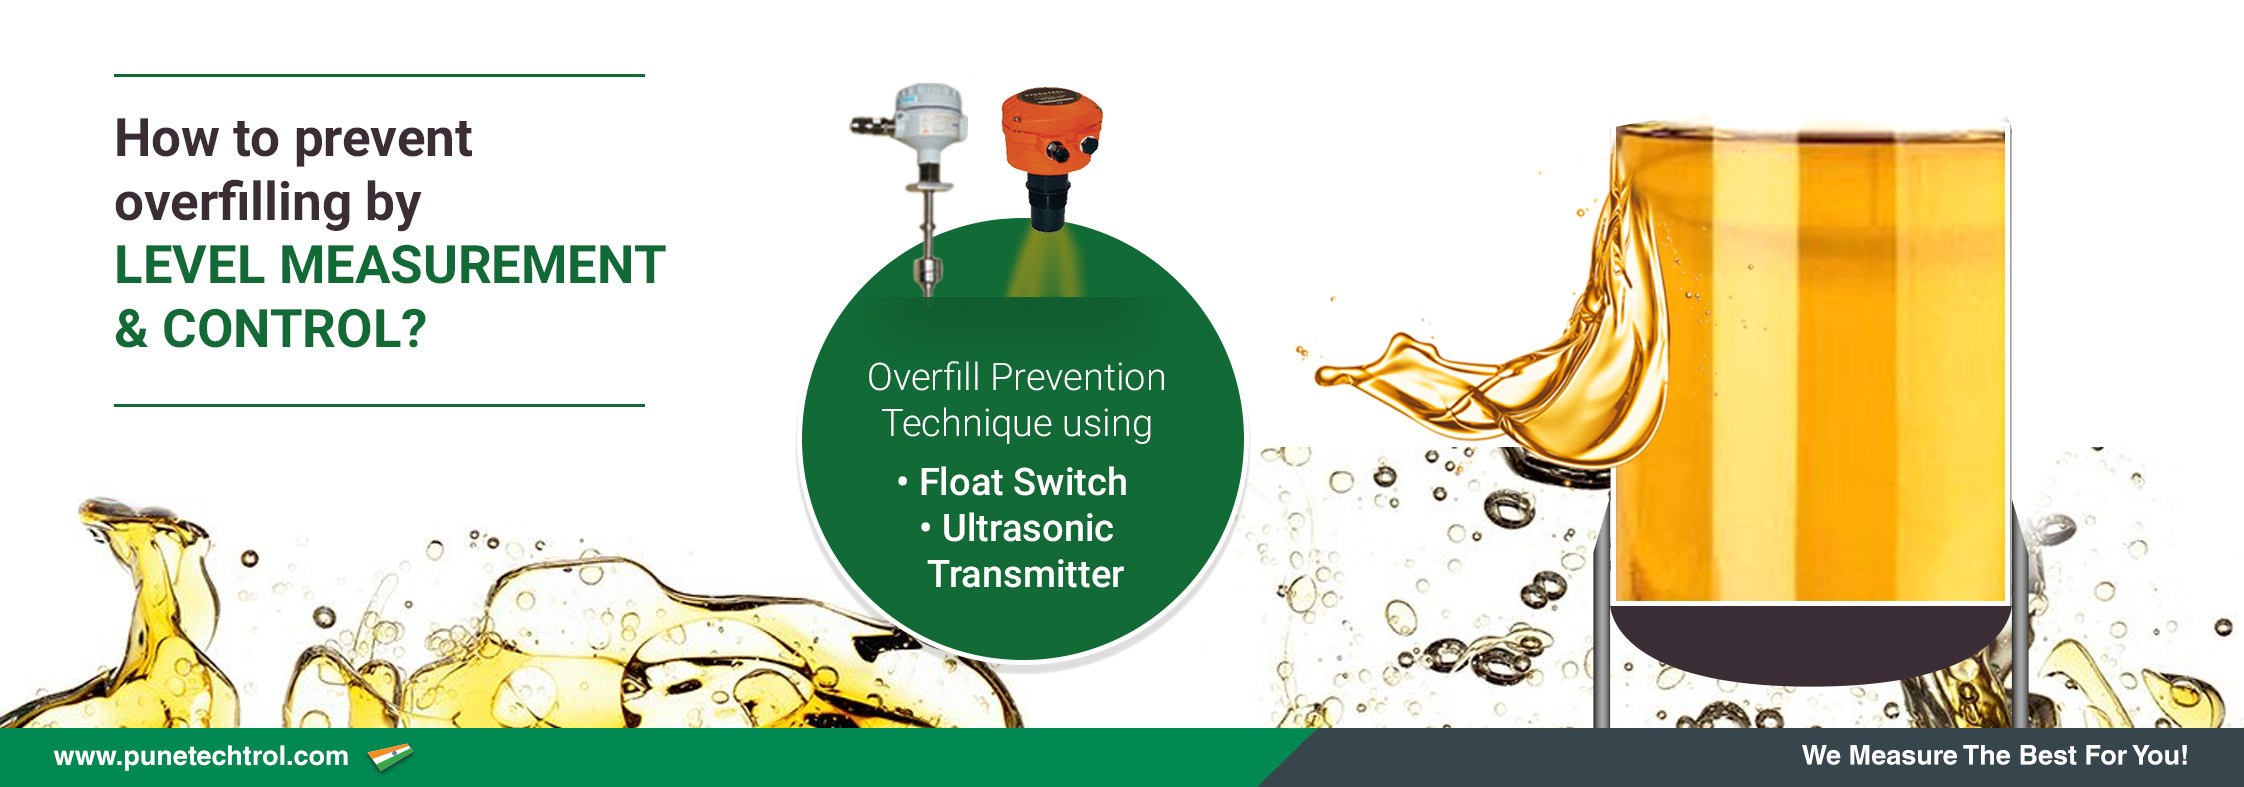 How to Prevent Overfilling By Level Measurement And Control